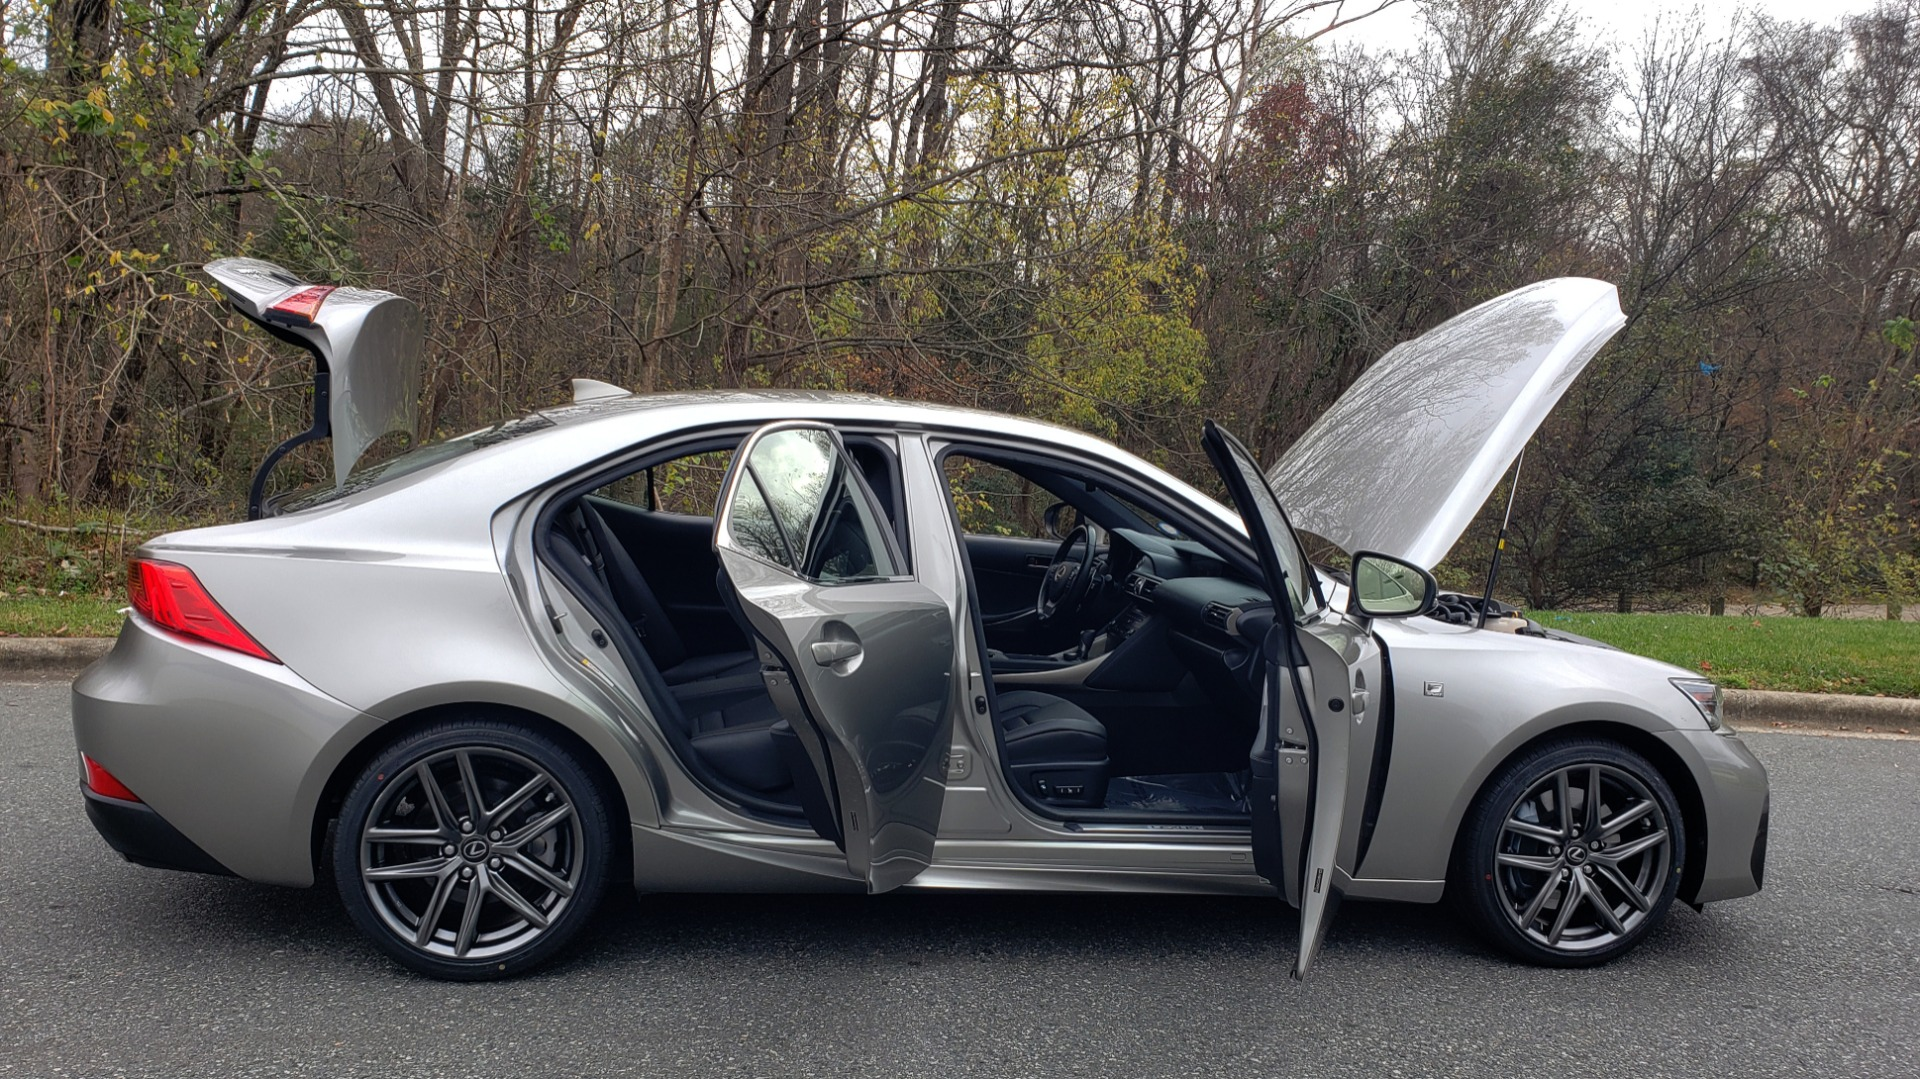 Used 2017 Lexus IS 200 TURBO F-SPORT / BSM / SUNROOF / VENT SEATS / REARVIEW for sale Sold at Formula Imports in Charlotte NC 28227 15